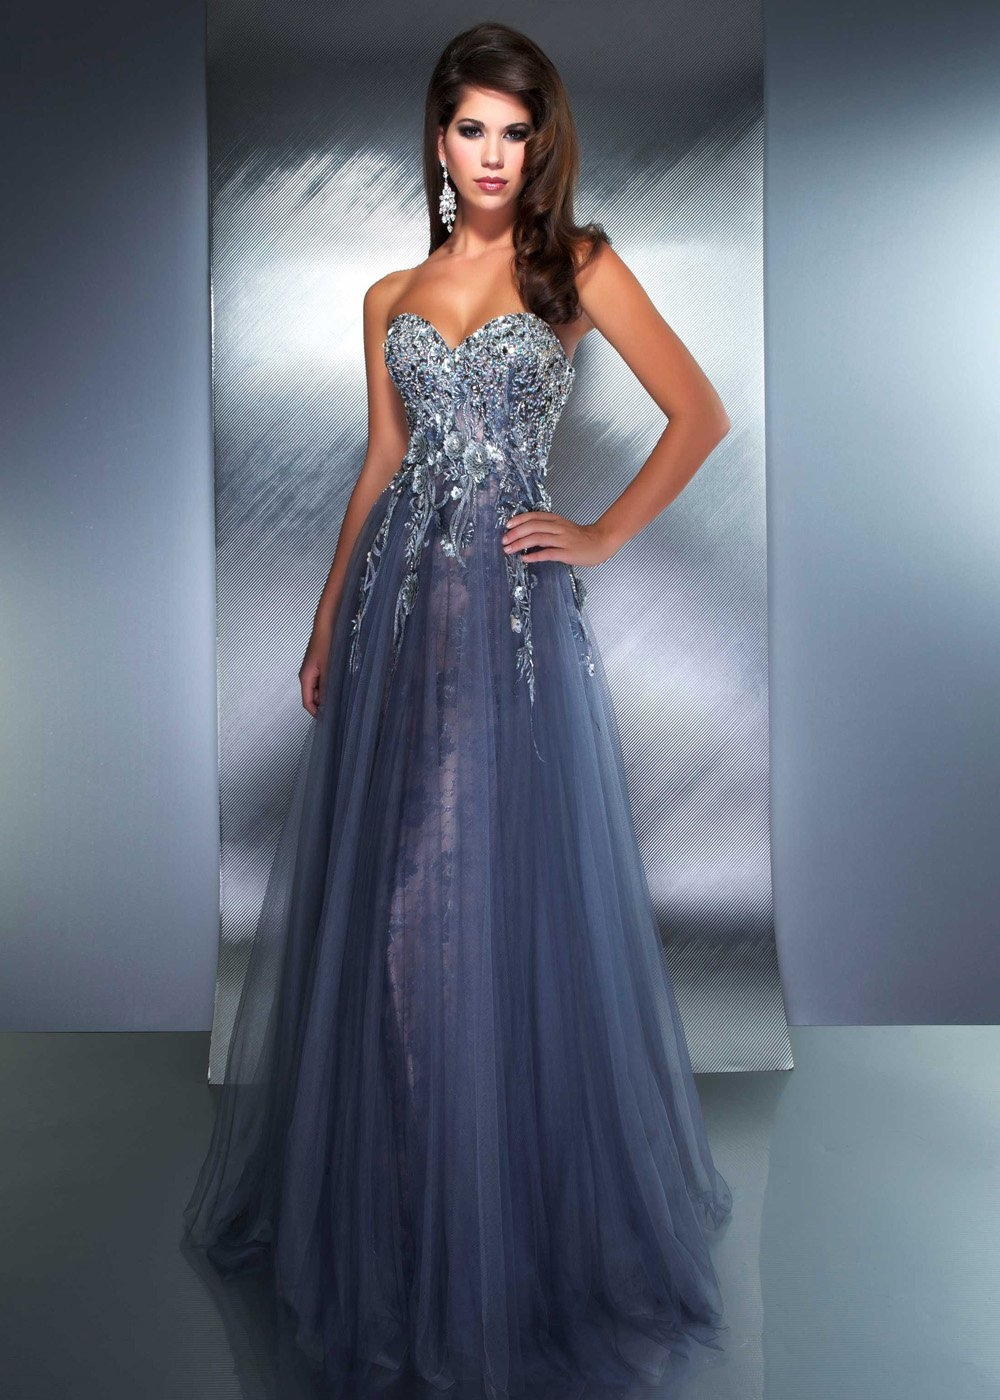 Stunning Strapless Blue Chiffon Gown Pictures, Photos, and Images ...